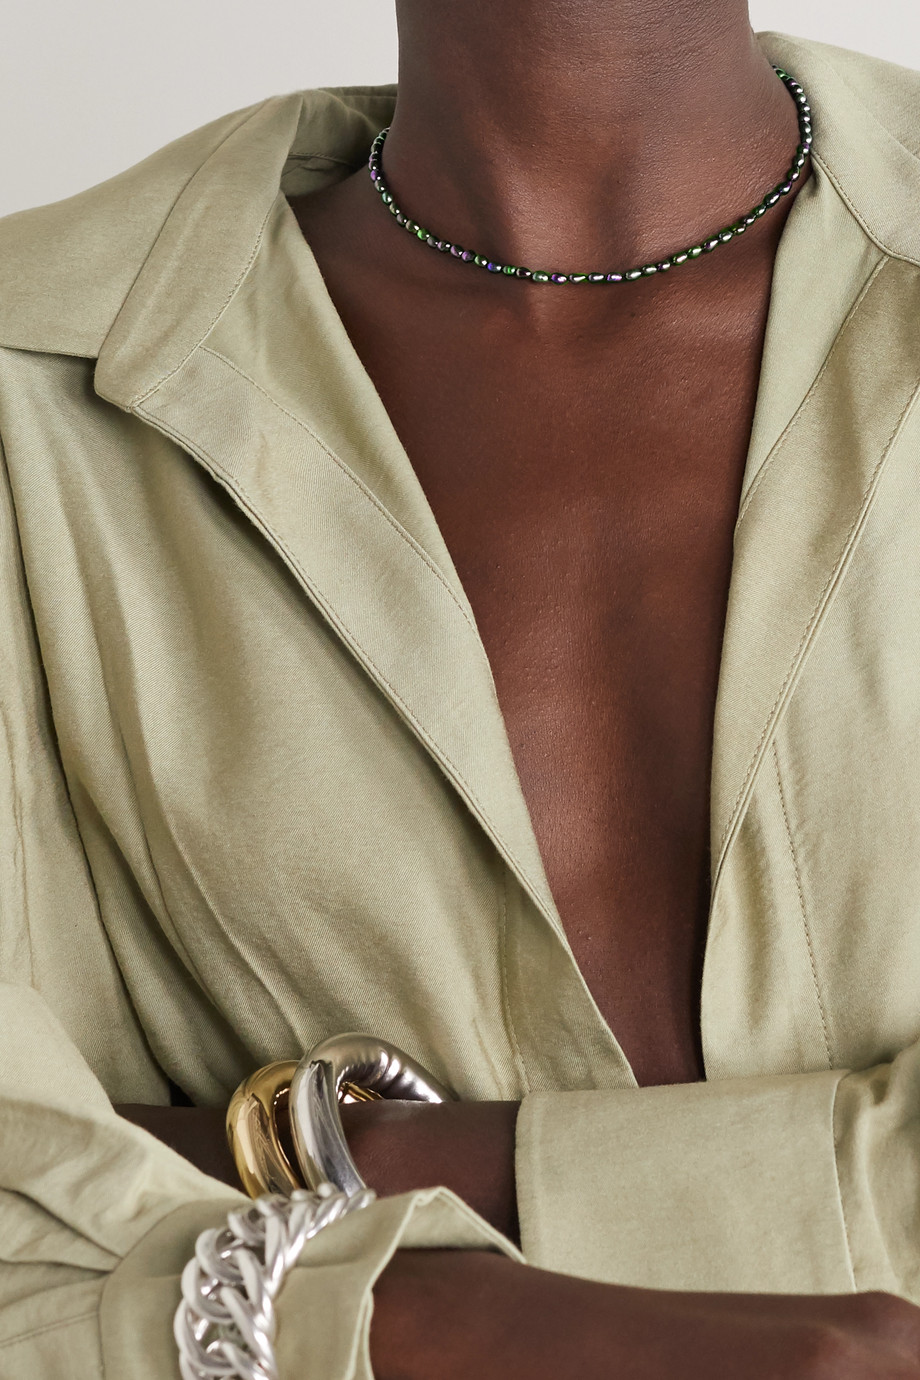 Sophie Buhai Pearl and silver necklace